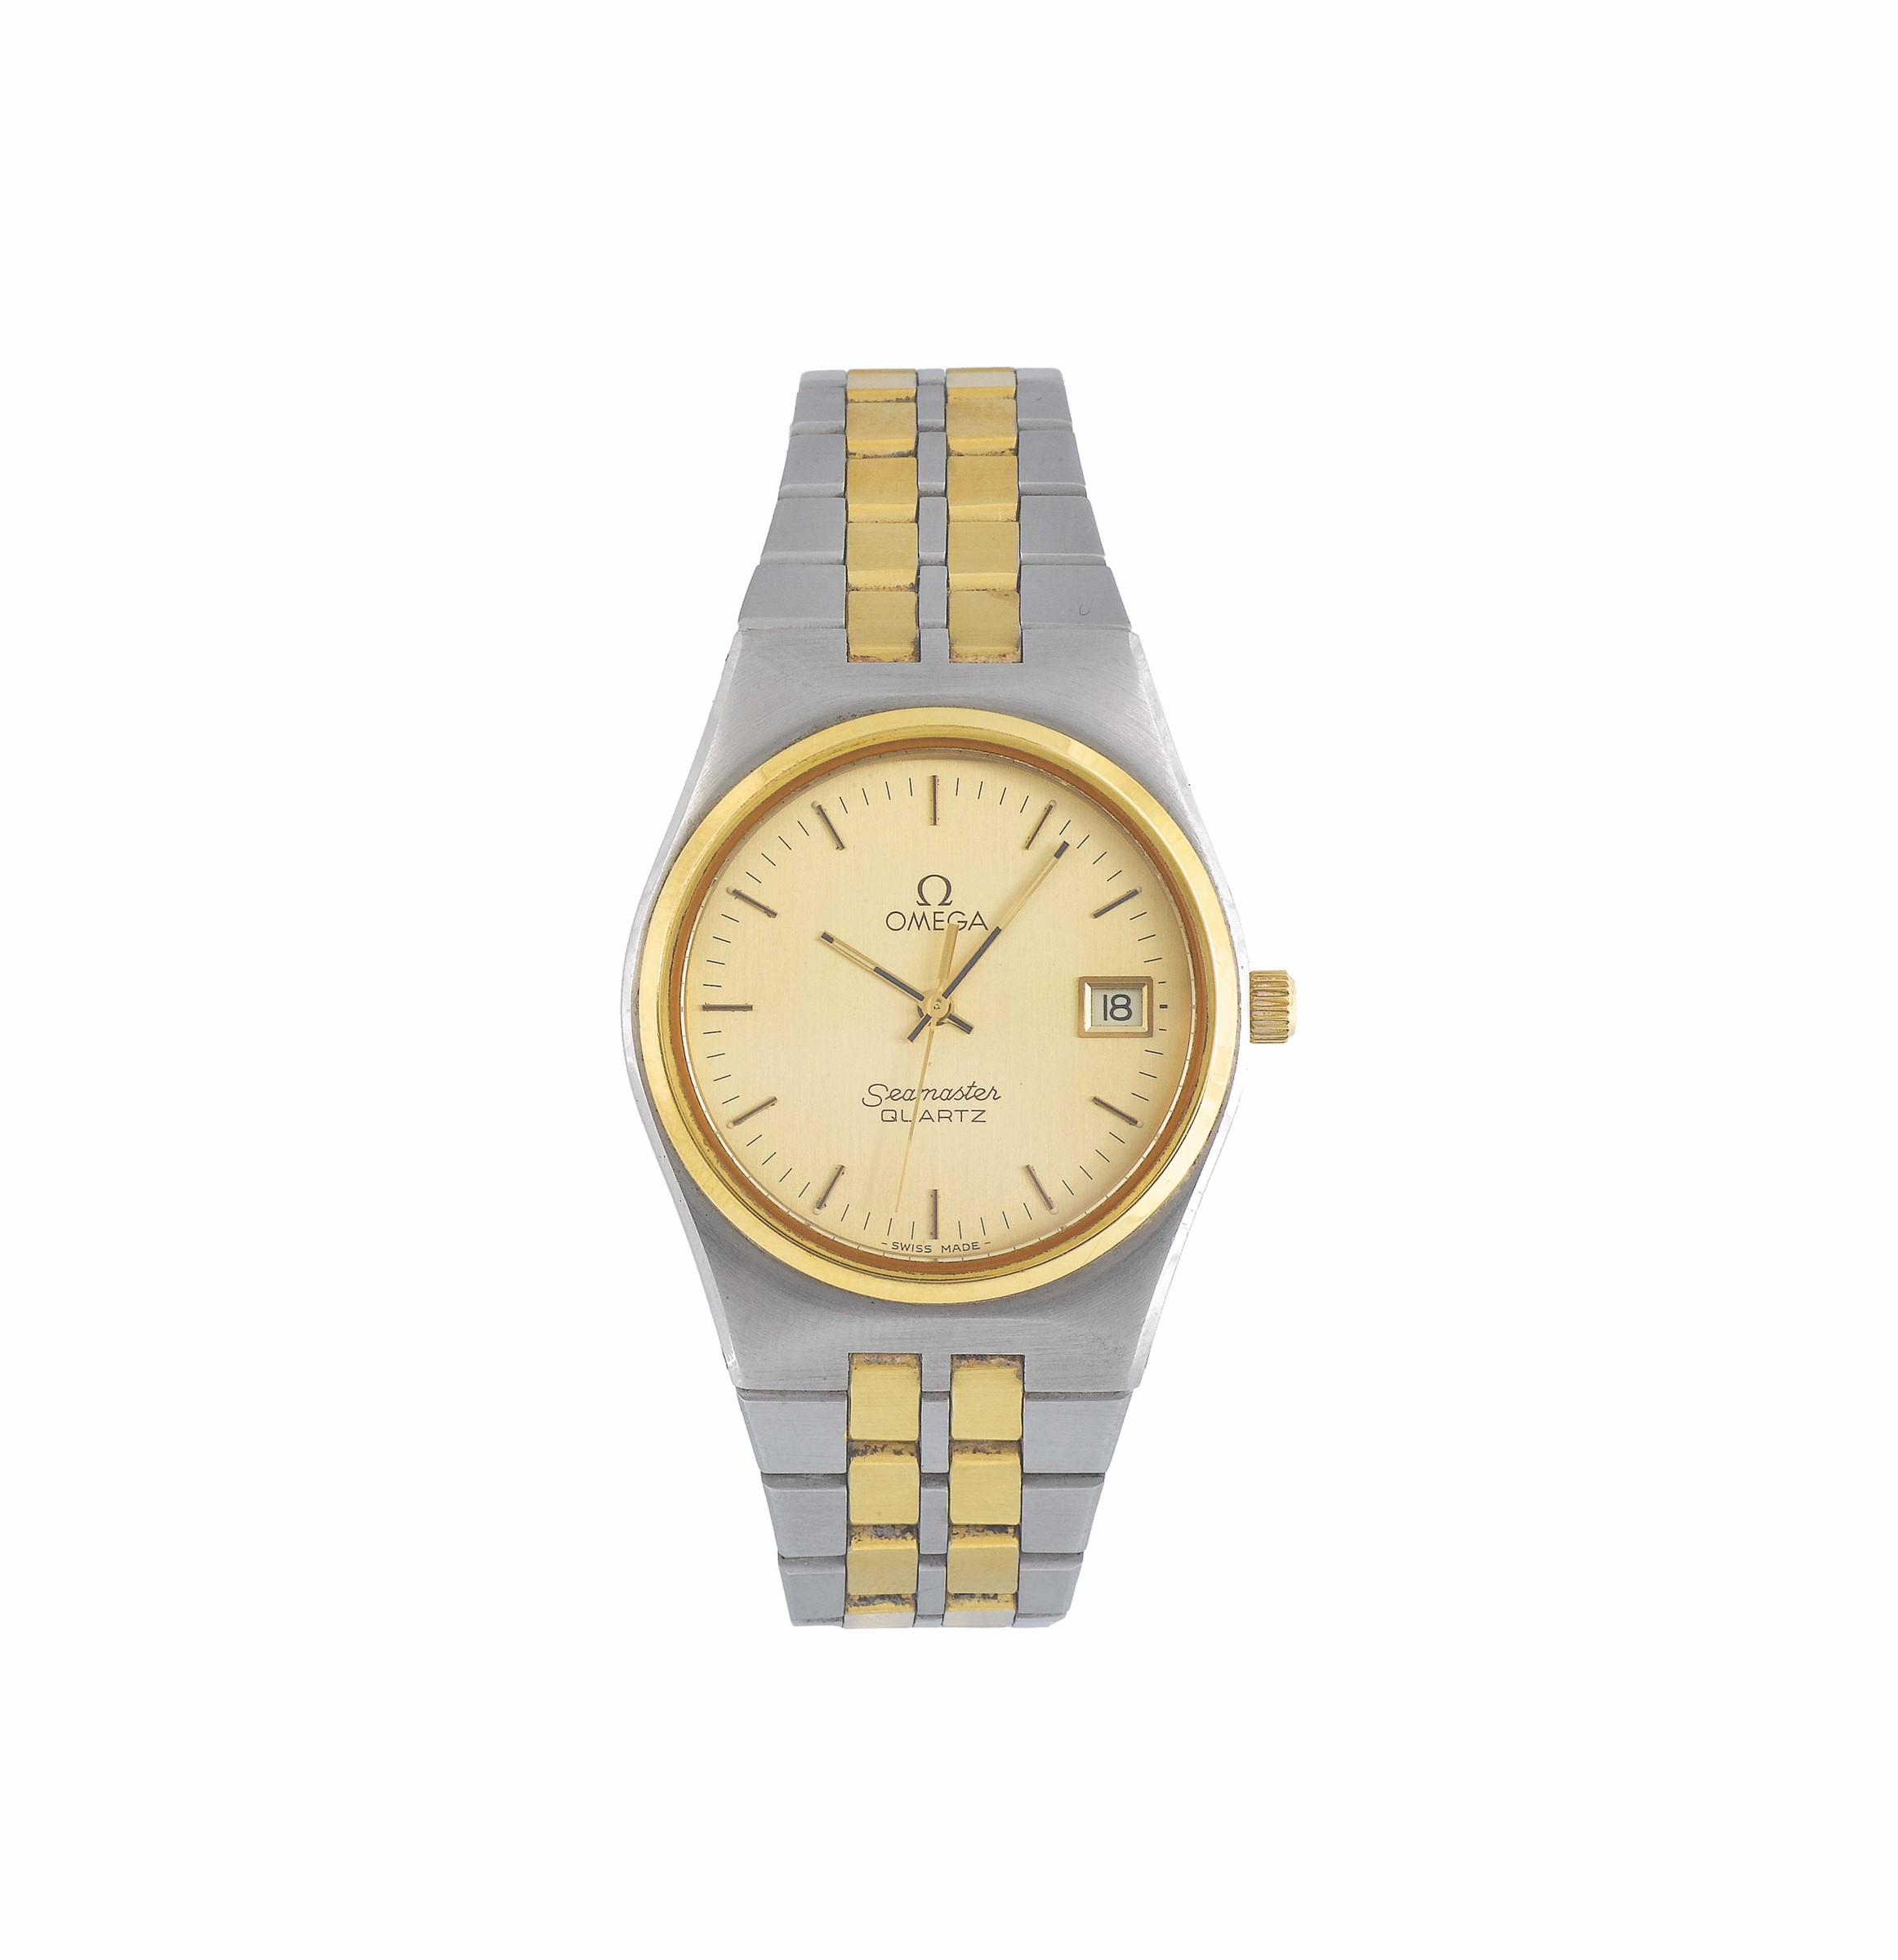 OMEGA, Seamaster Quartz Ref. 1960195, center seconds, water resistant, stainless steel and gold-plated  ...